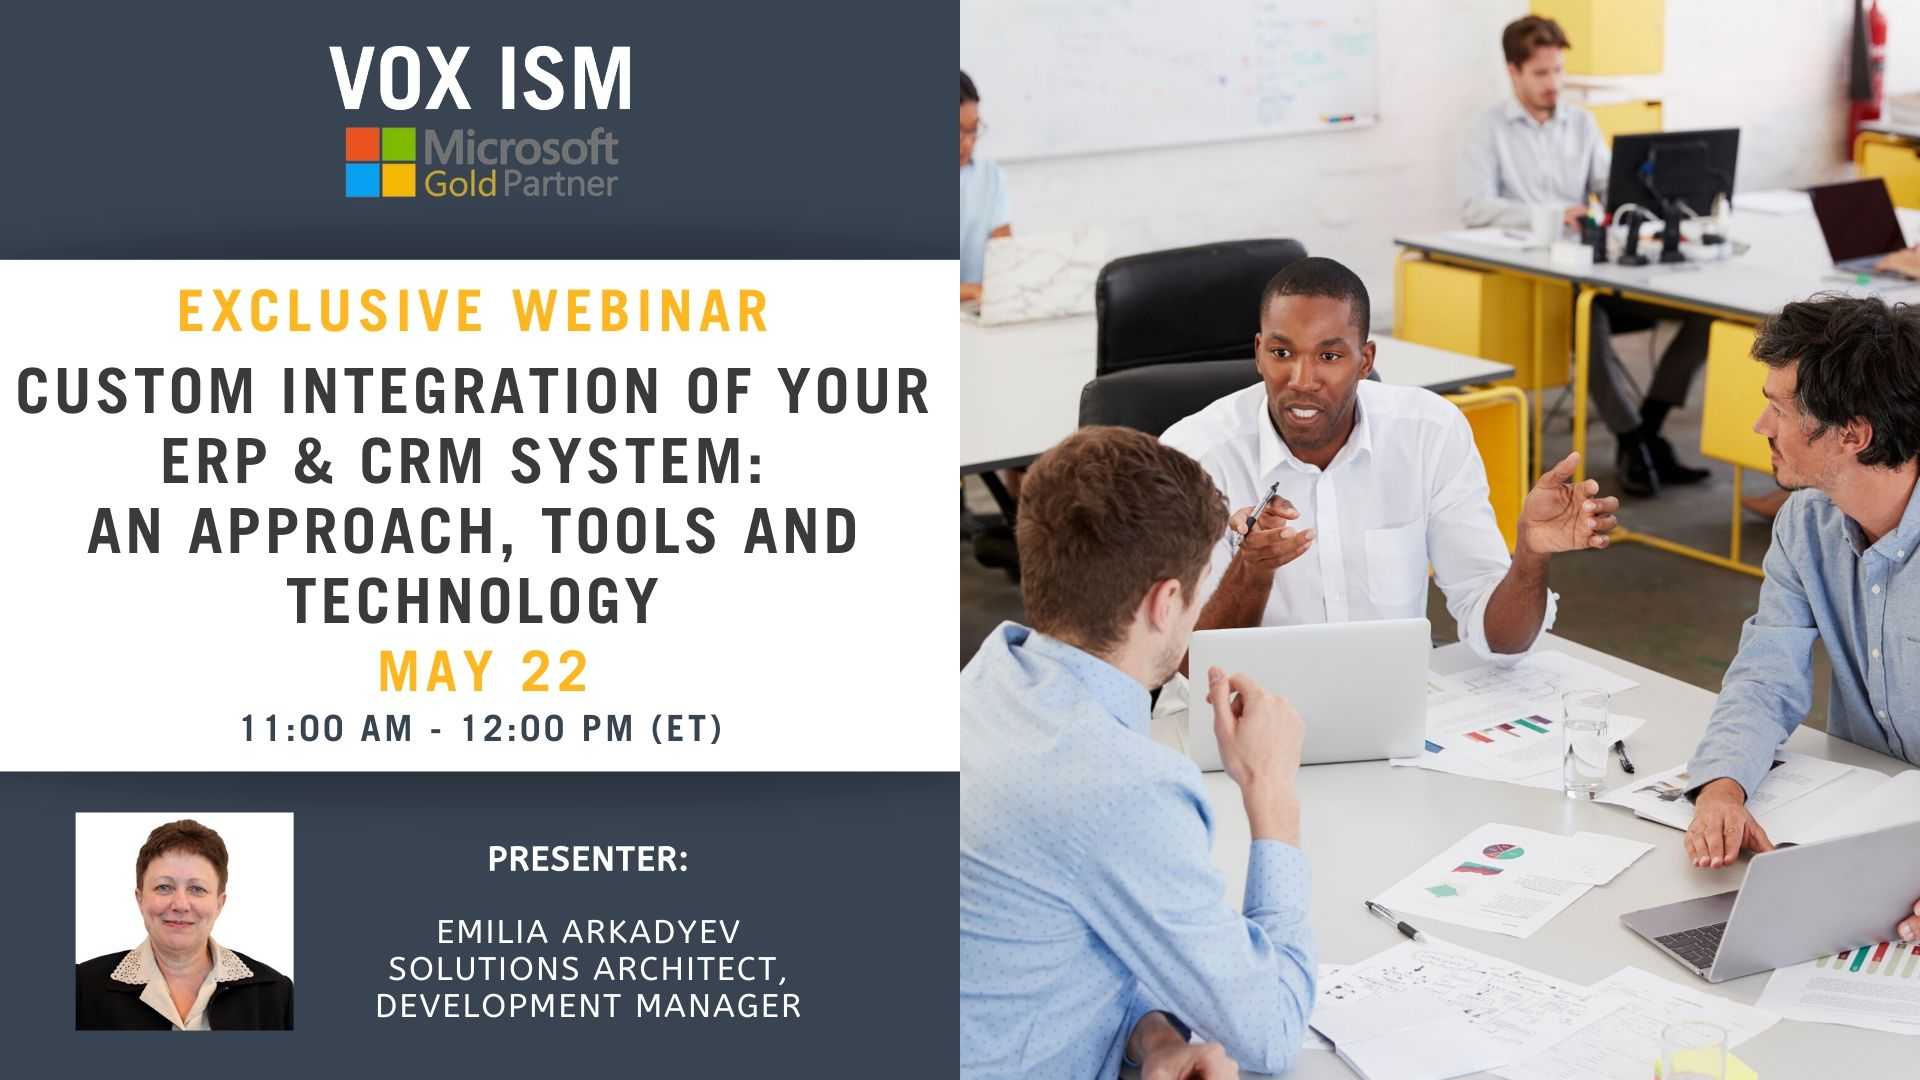 Custom Integration your ERP & CRM system: An Approach, Tools and Technology - May 22 - Webinar